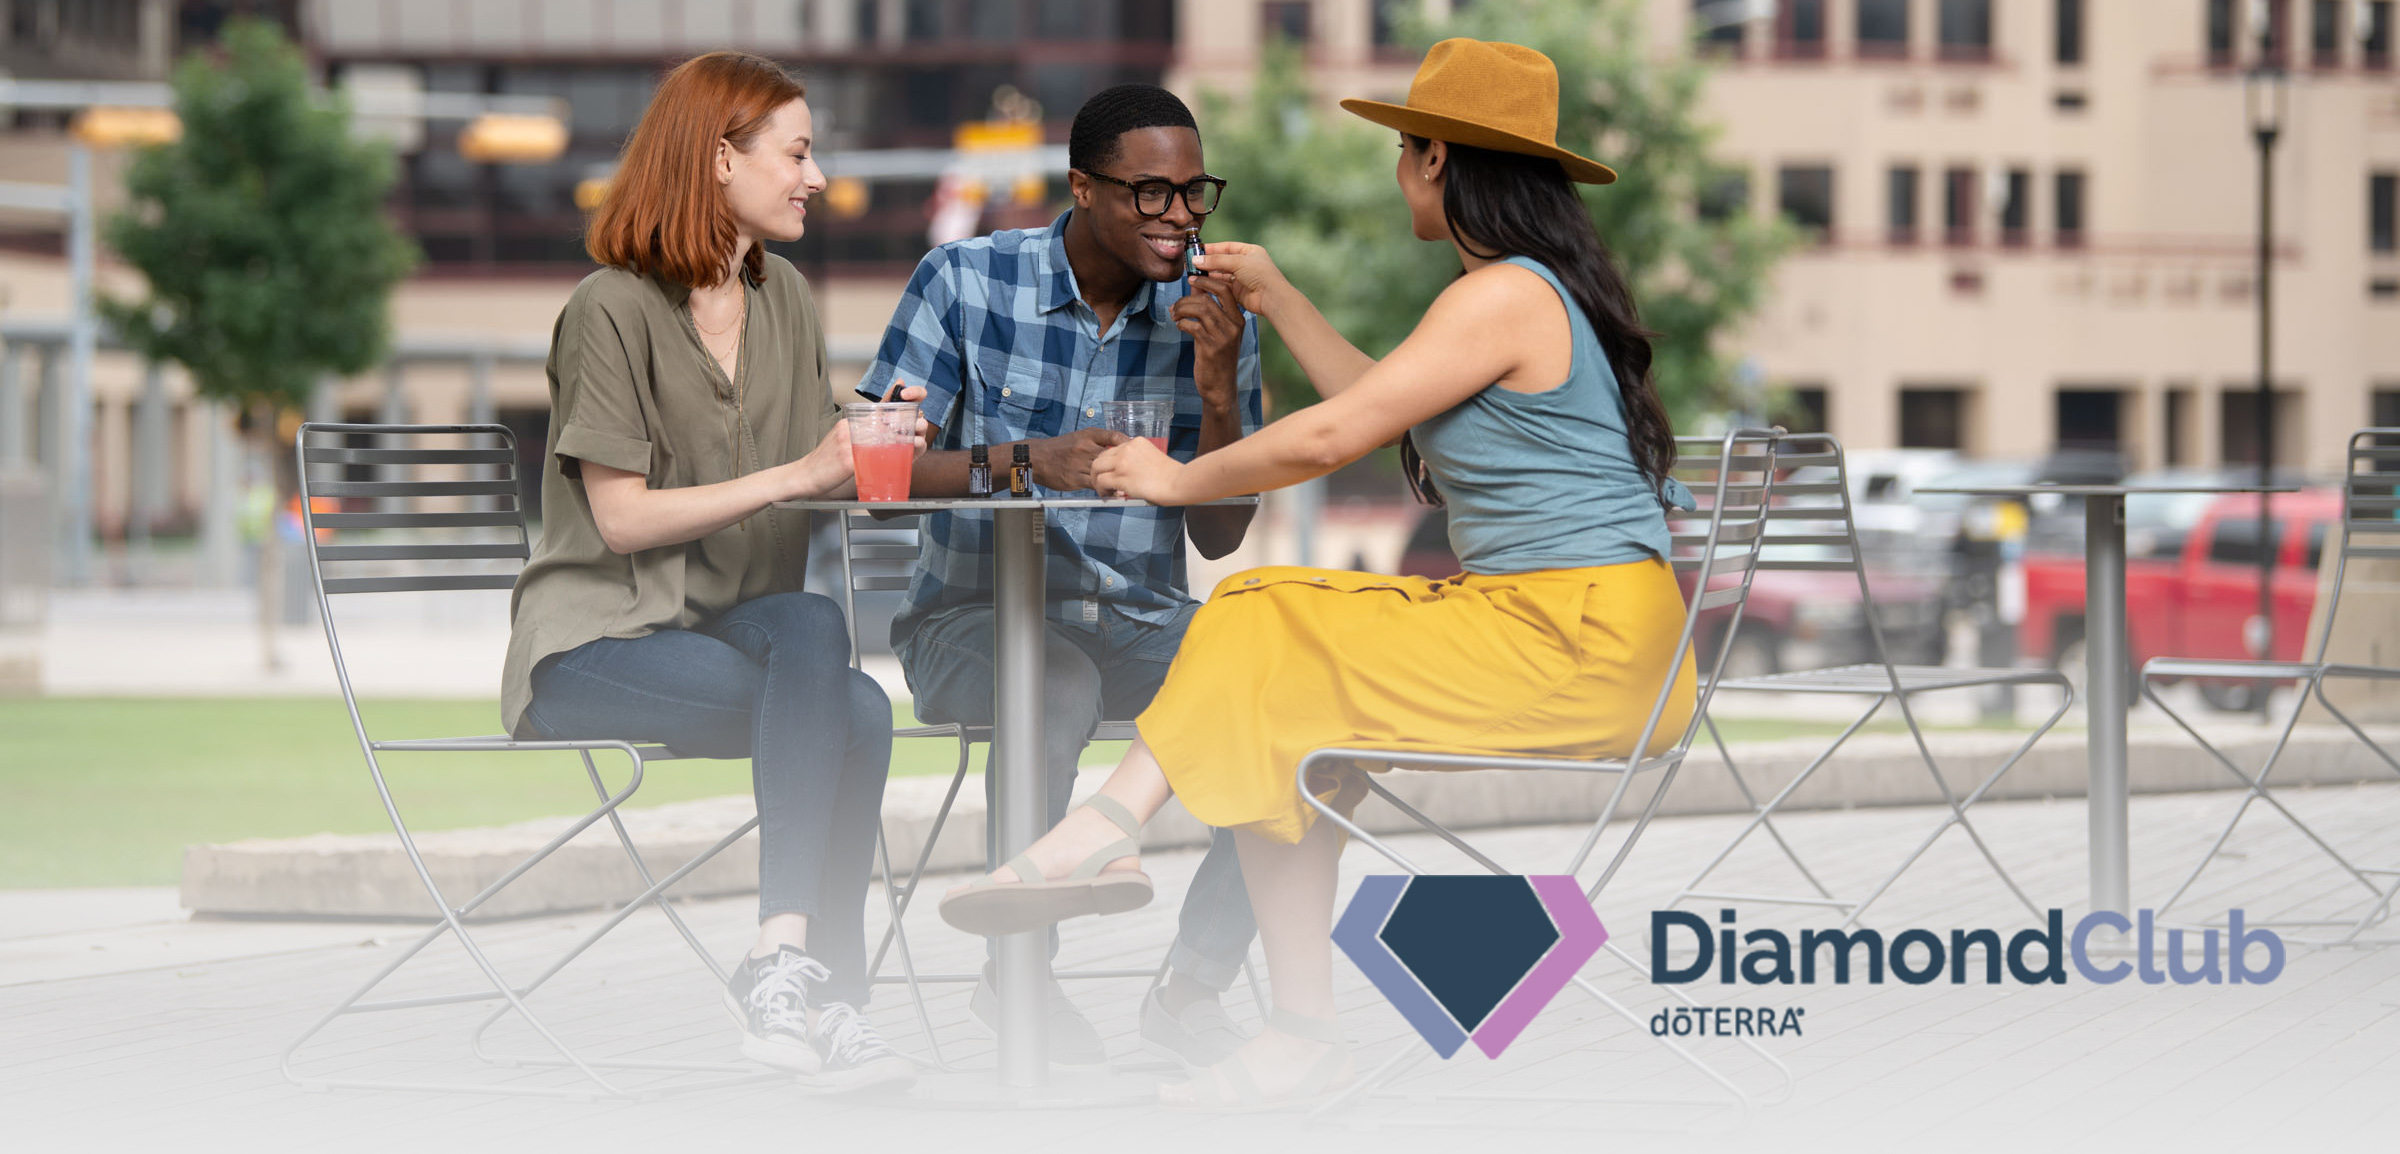 What is Diamond Club? Three individuals at a table enjoying drinks and sharing essential oils. Diamond Club logo in lower right corner.